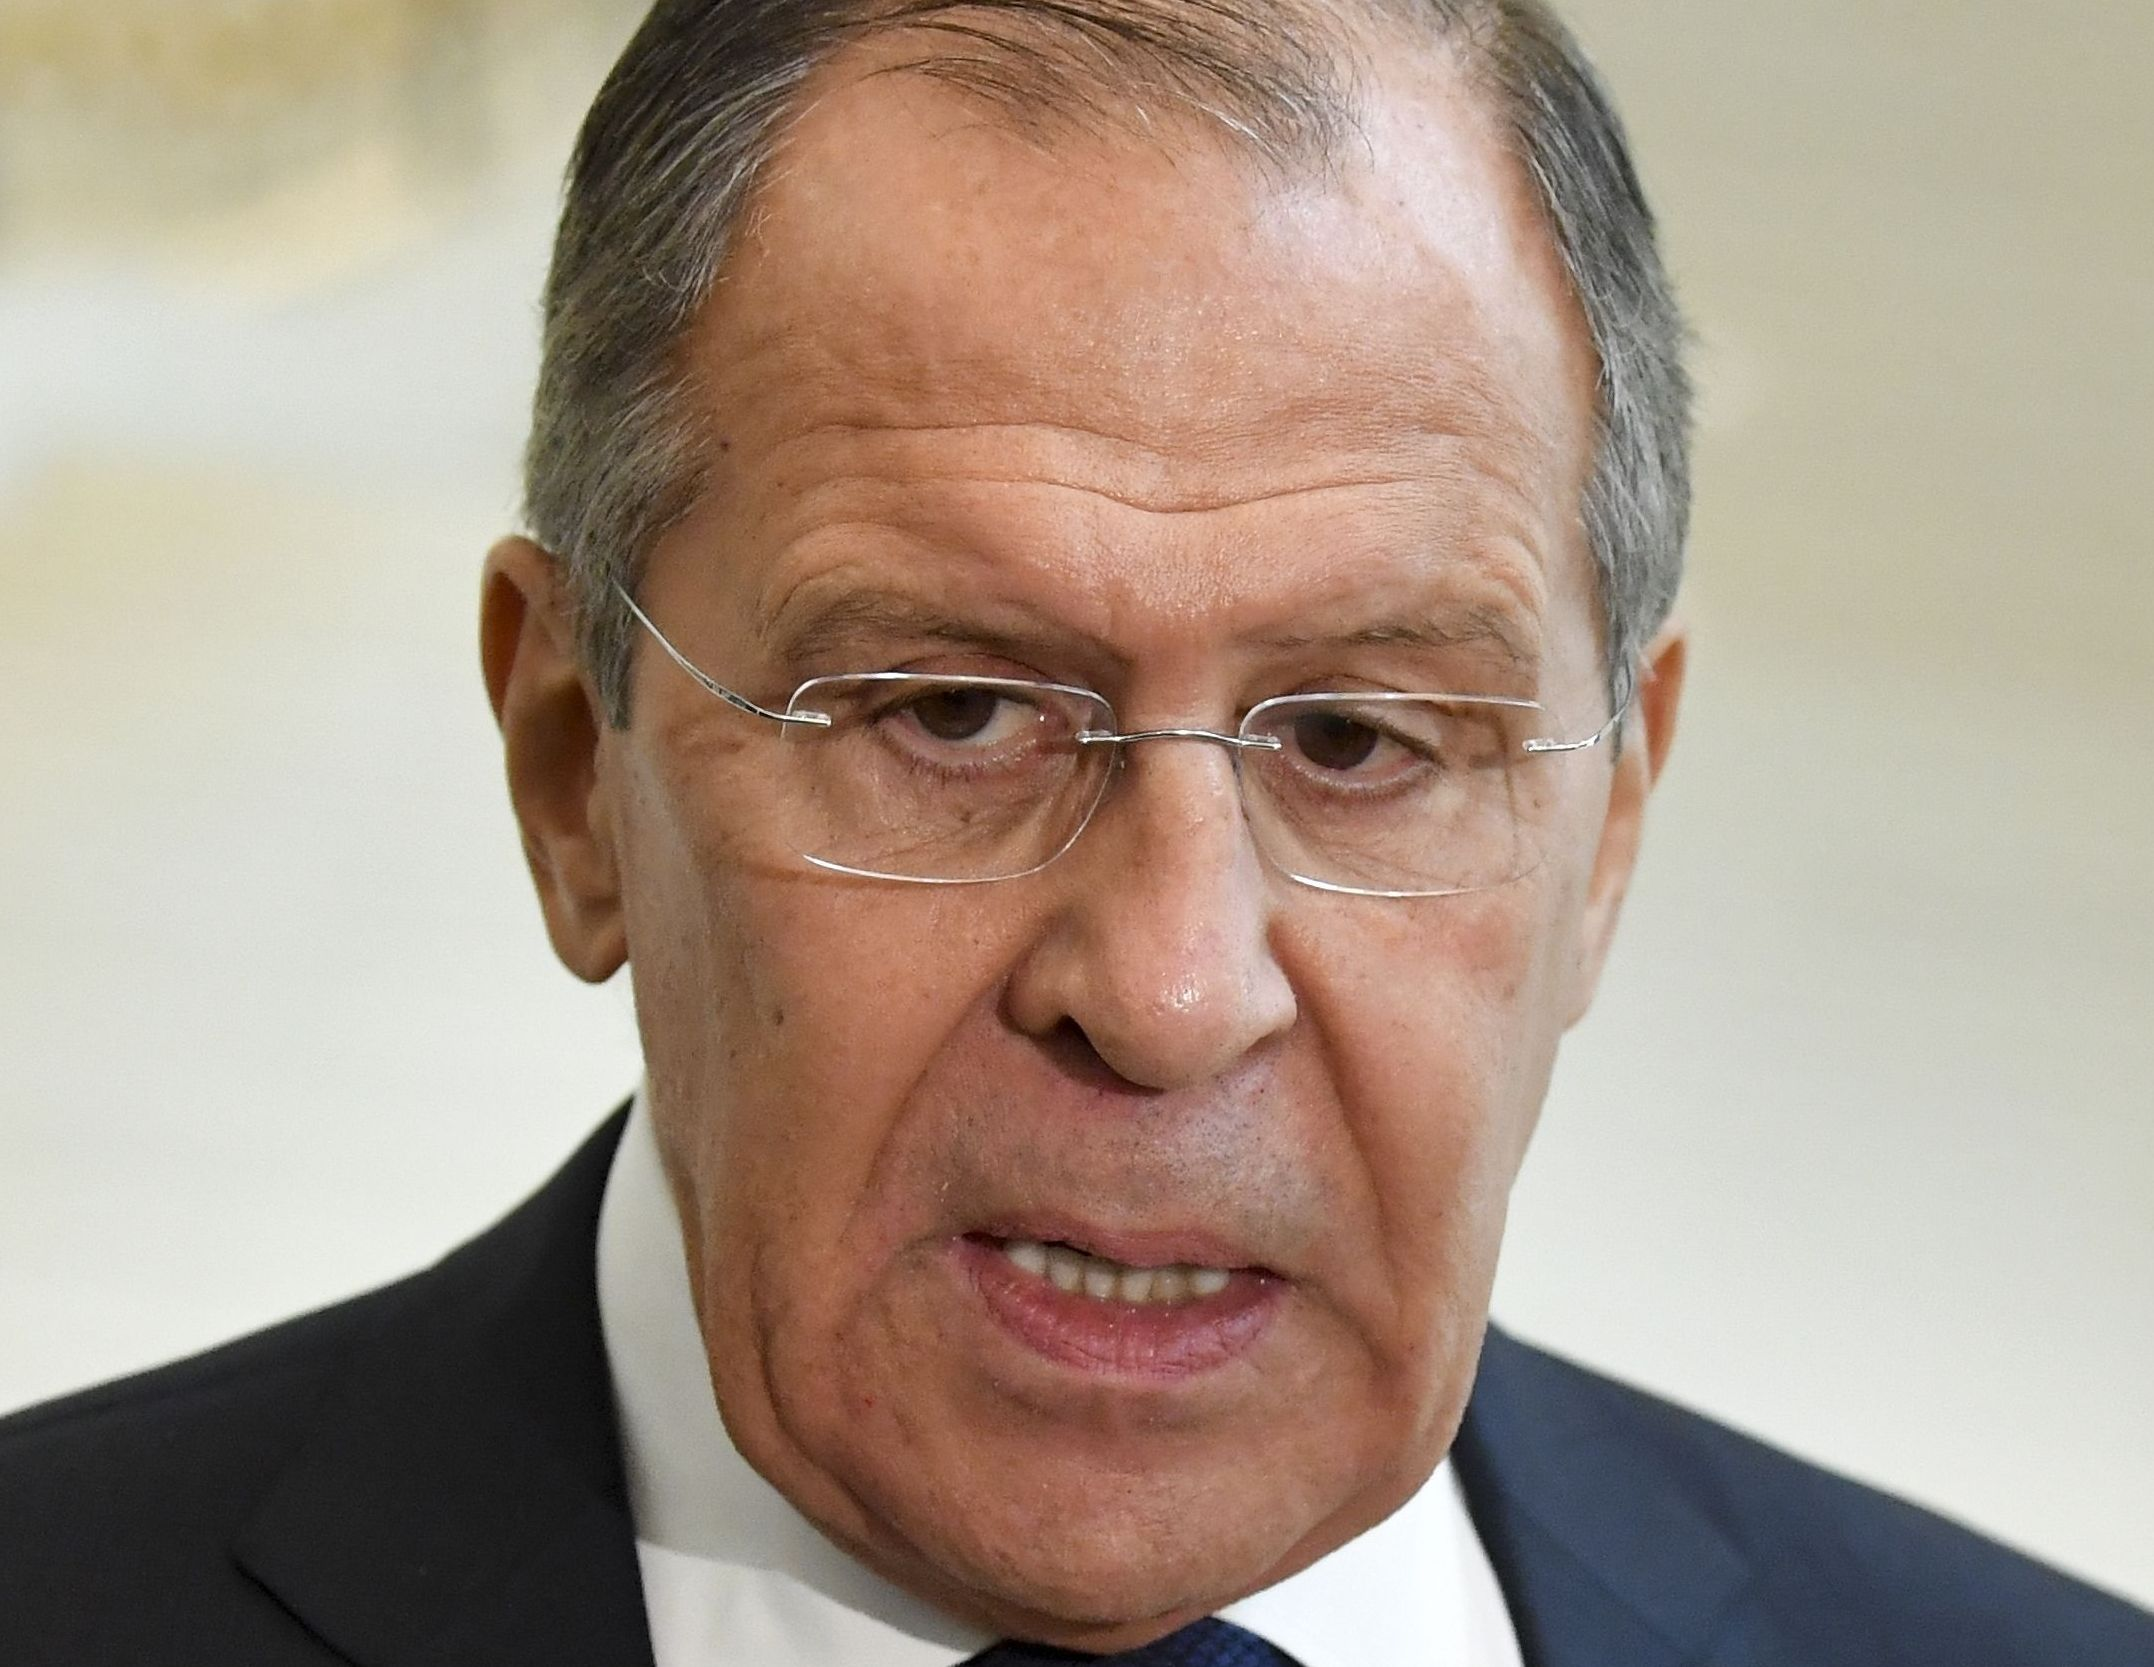 Sergei Lavrov: 'I can guarantee that Russia has not tampered with the site'